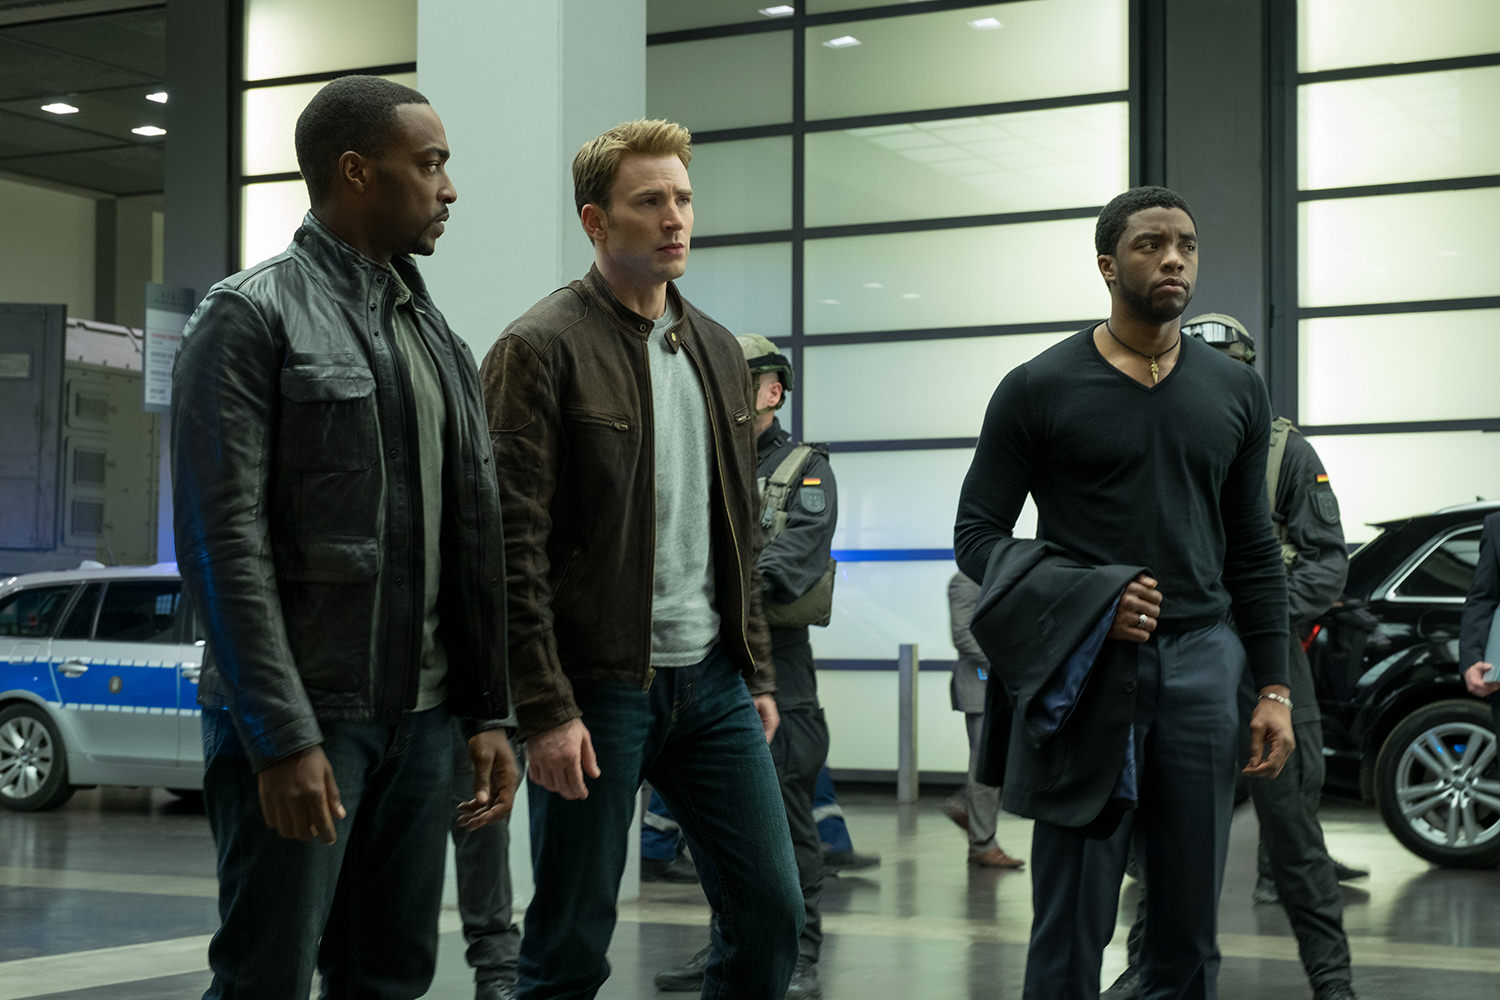 Marvel's Captain America: Civil War..L to R: Falcon/Sam Wilson (Anthony Mackie), Captain America/Steve Rogers (Chris Evans), and T'Challa/Black Panther (Chadwick Boseman)..Photo Credit: Zade Rosenthal..© Marvel 2016